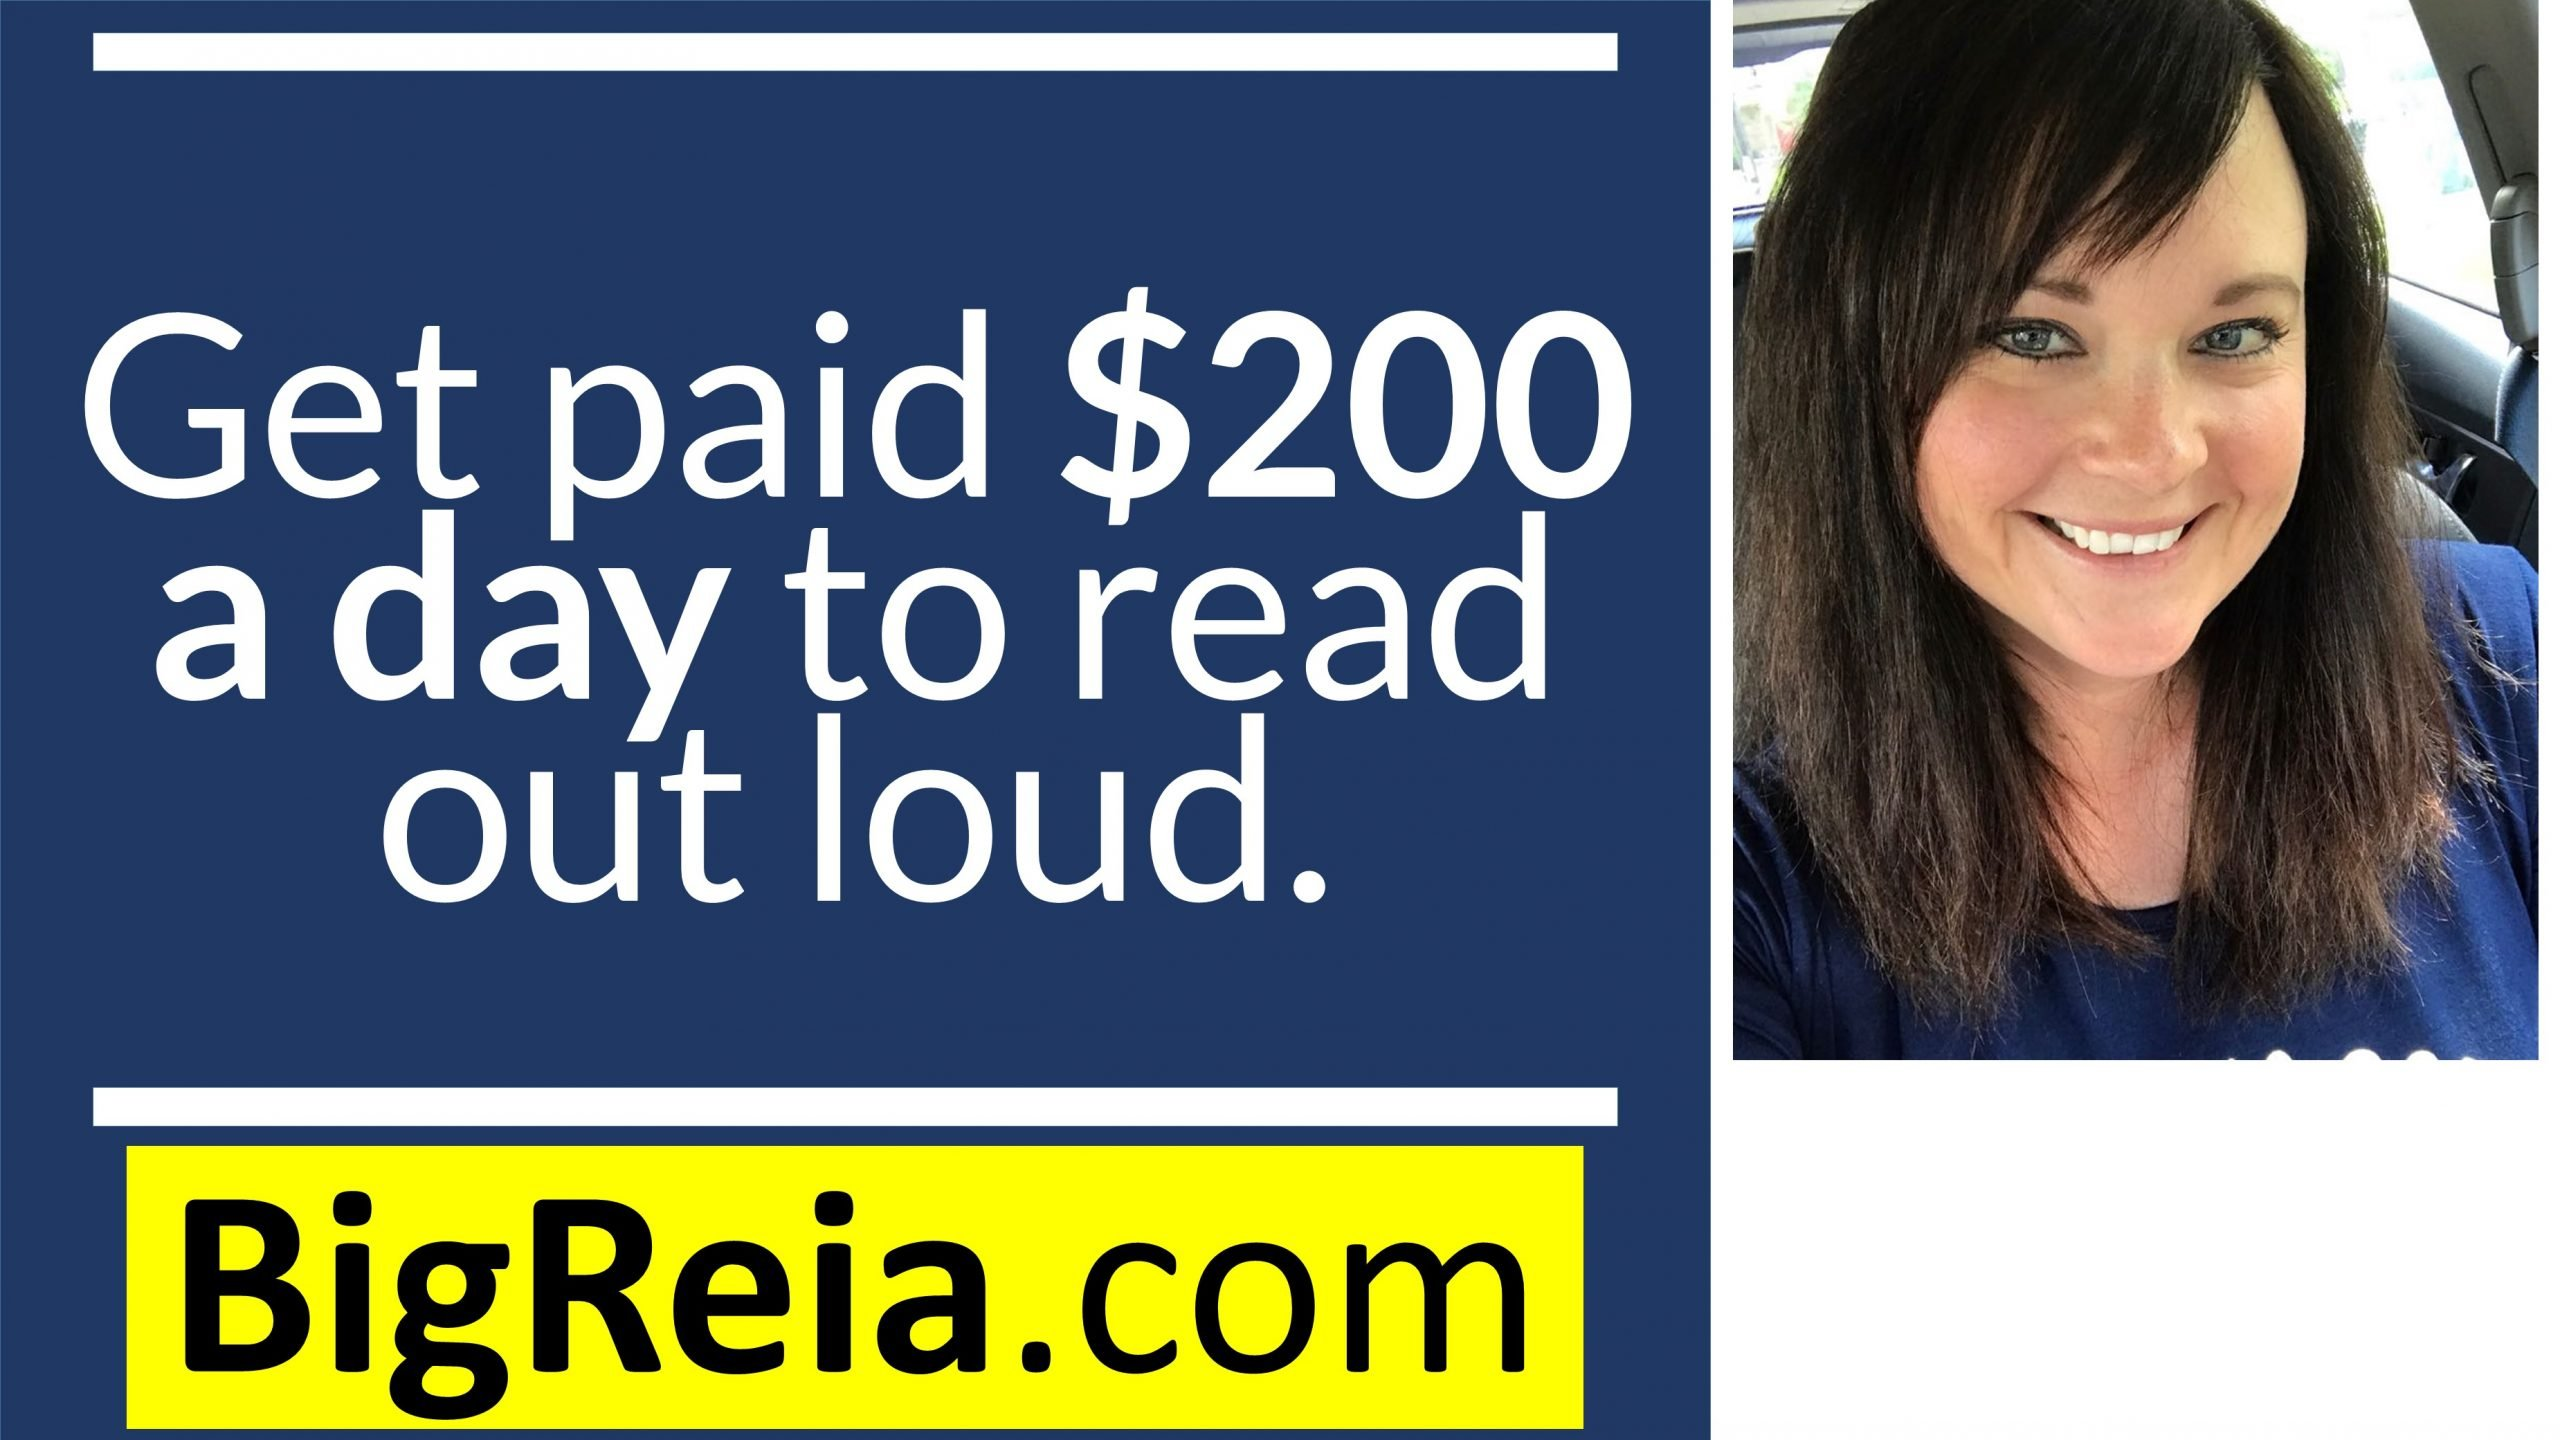 Real estate investors: how to make an extra $200/day from reading out loud. Quarantine money y'all.